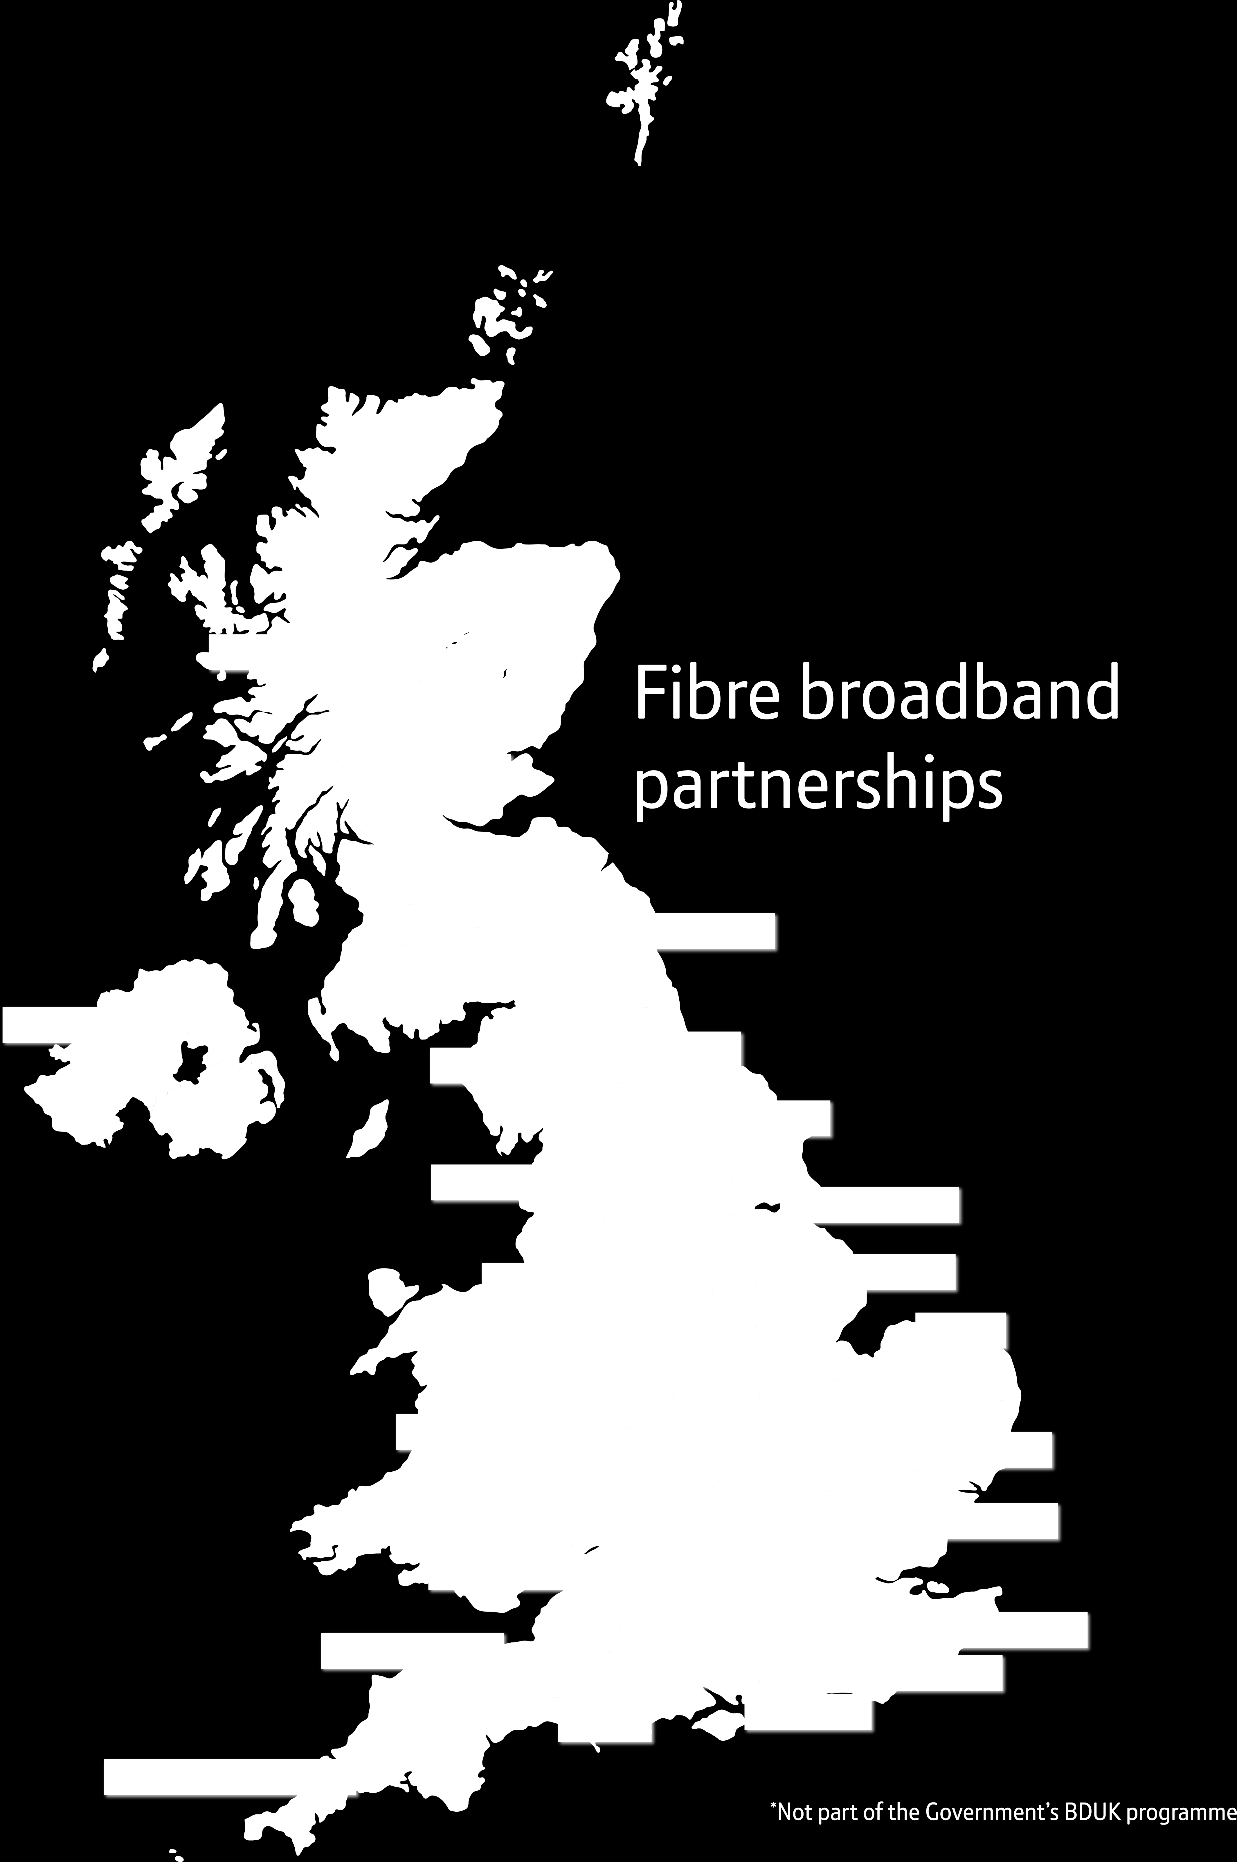 BDUK bids won @ August 2013 This map shows where Openreach have been successful in bidding to supply Superfast Fibre in BDUK locations (shown in